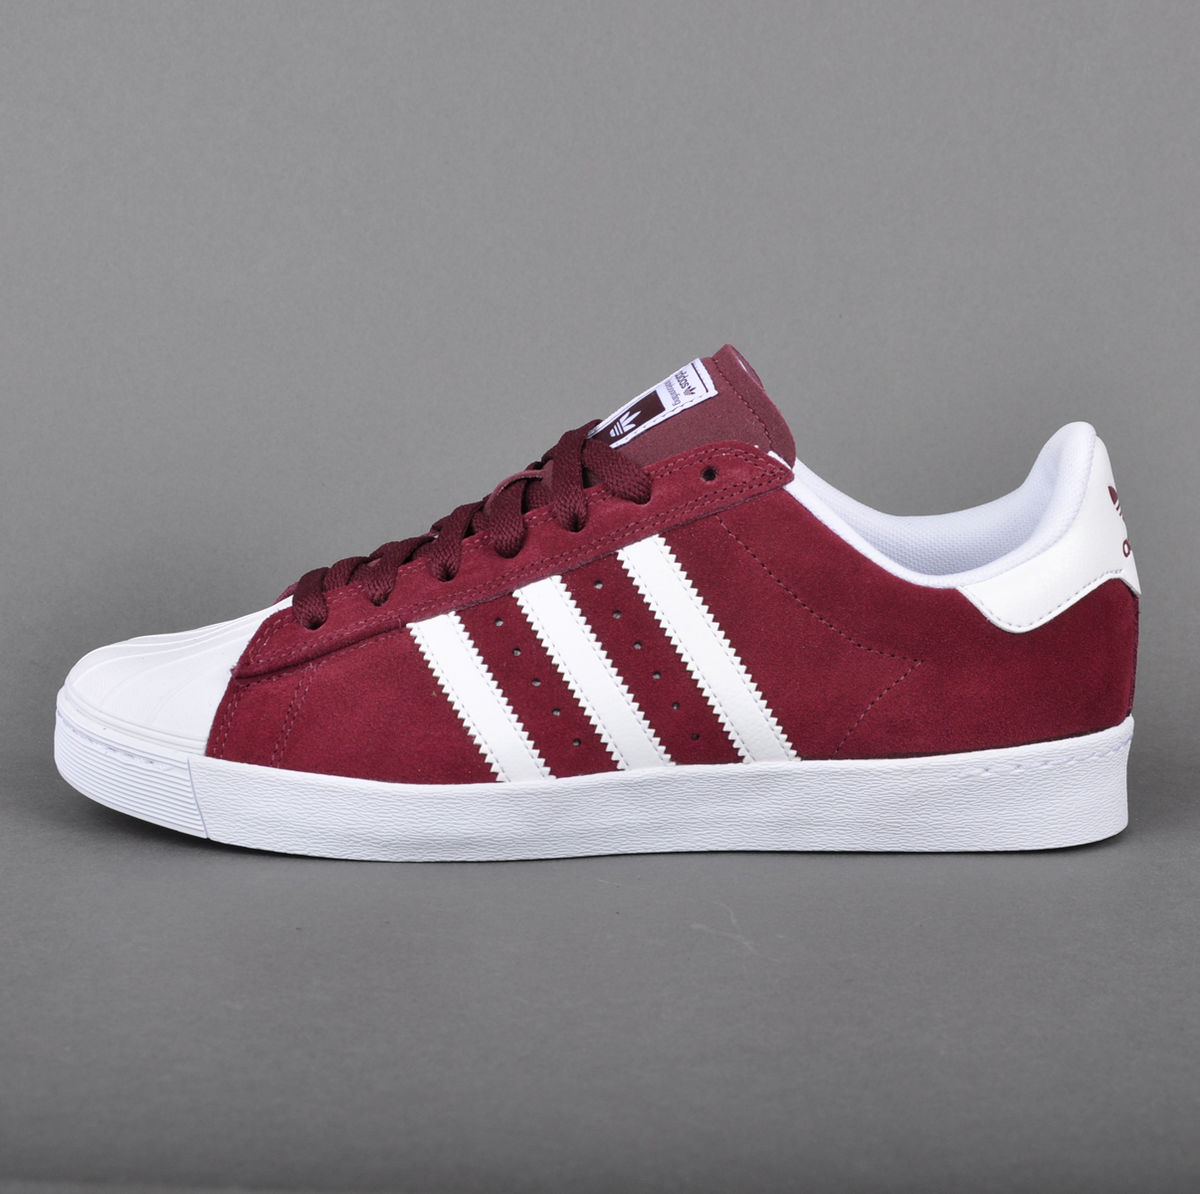 Buy Cheap Adidas Superstar Vulc ADV Shoes Sale Online 2018